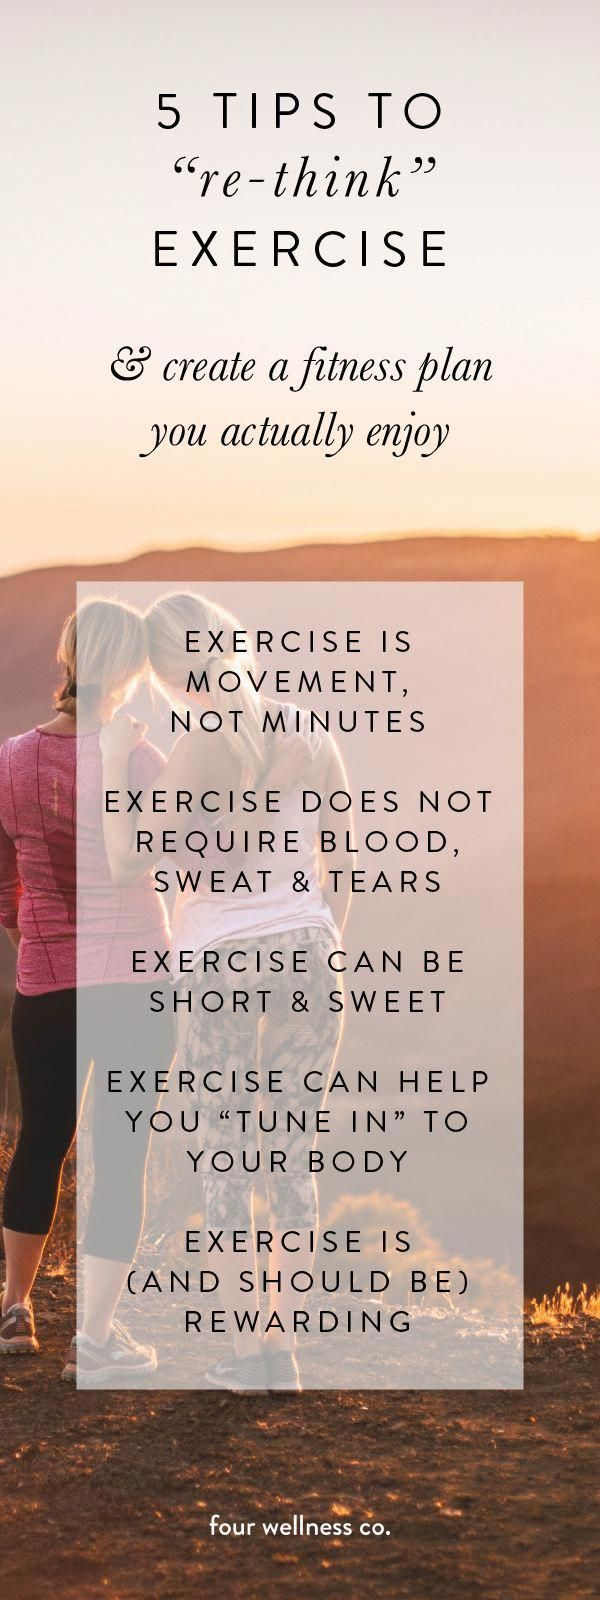 5 tips to re-think exercise and create a fitness plan you actually enjoy // A personal trainer share...